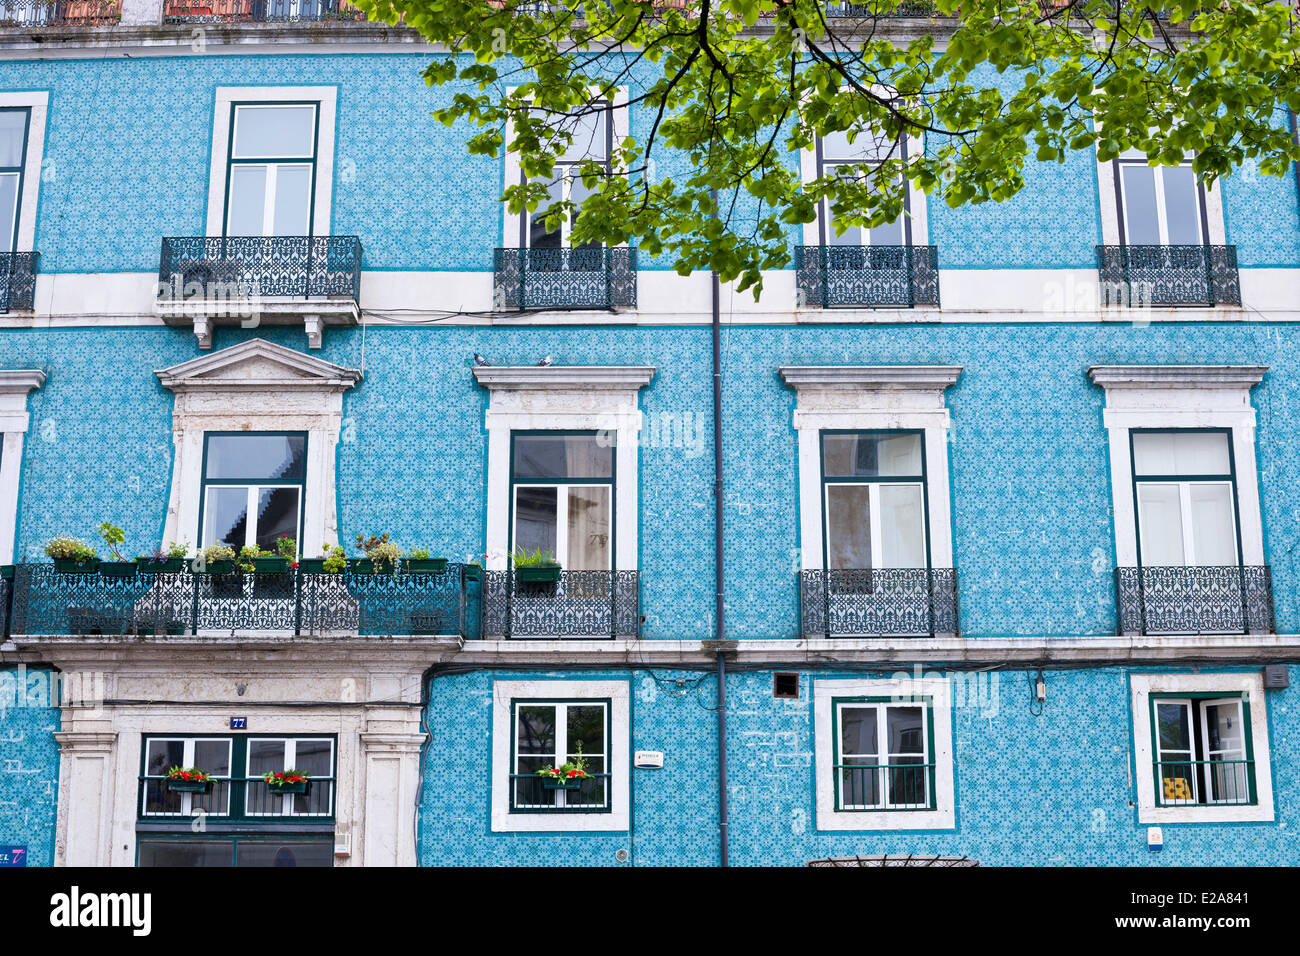 Portugal, Lisbon, the district of Graca, the Vila Sousa covered with blue ceramics - Stock Image